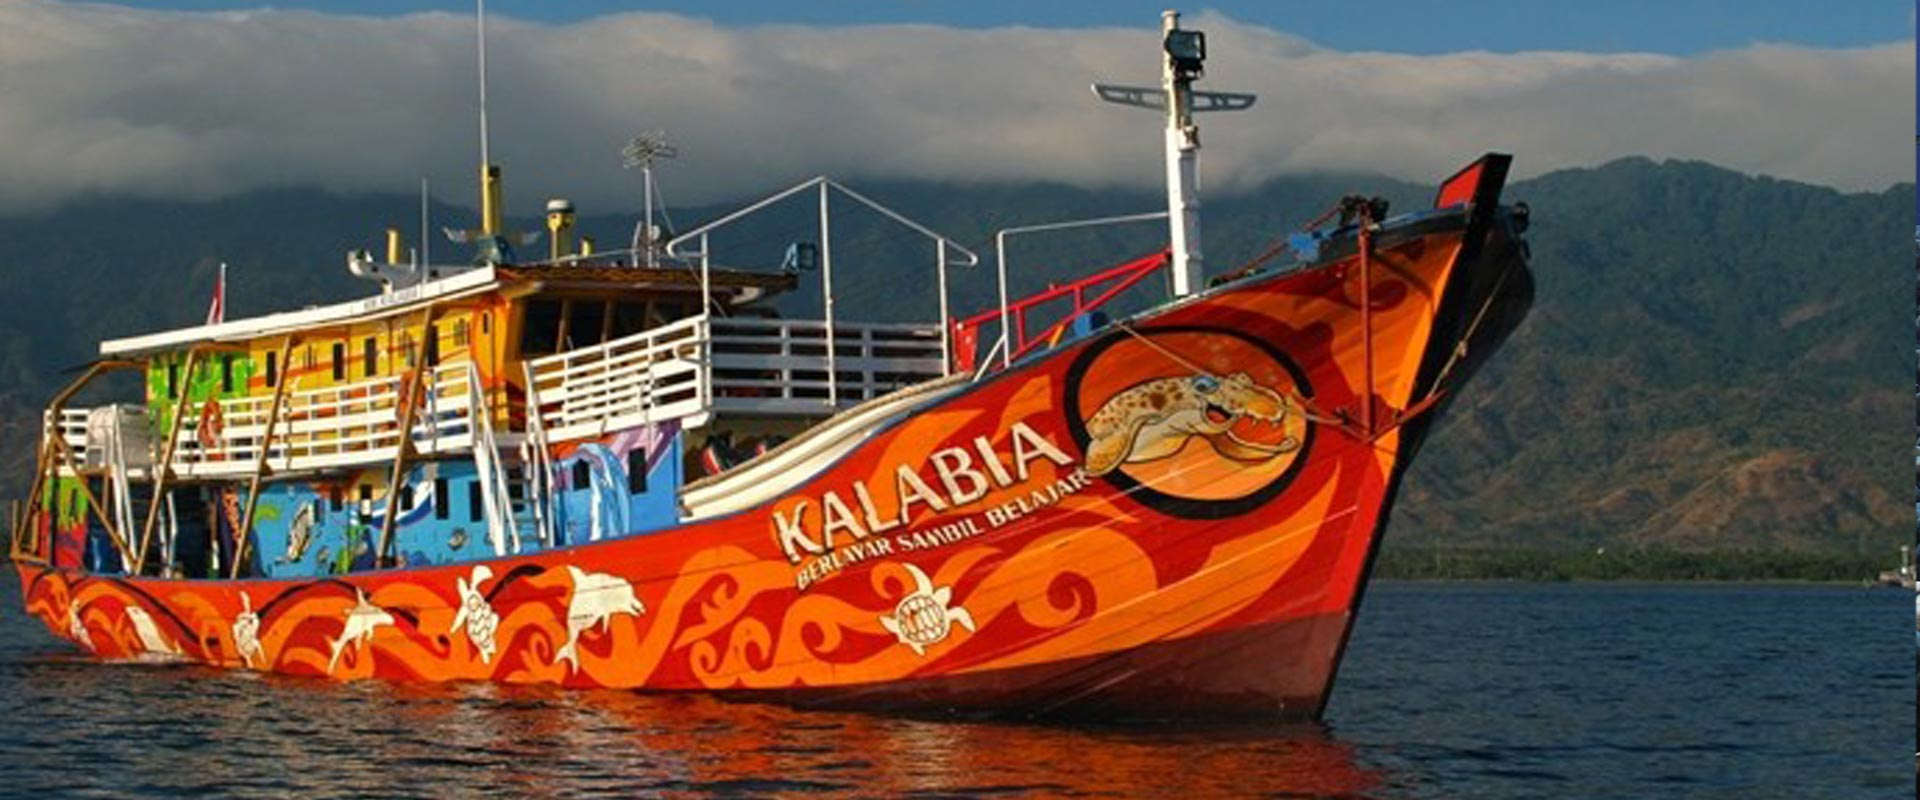 Kalabia-Unesco-header